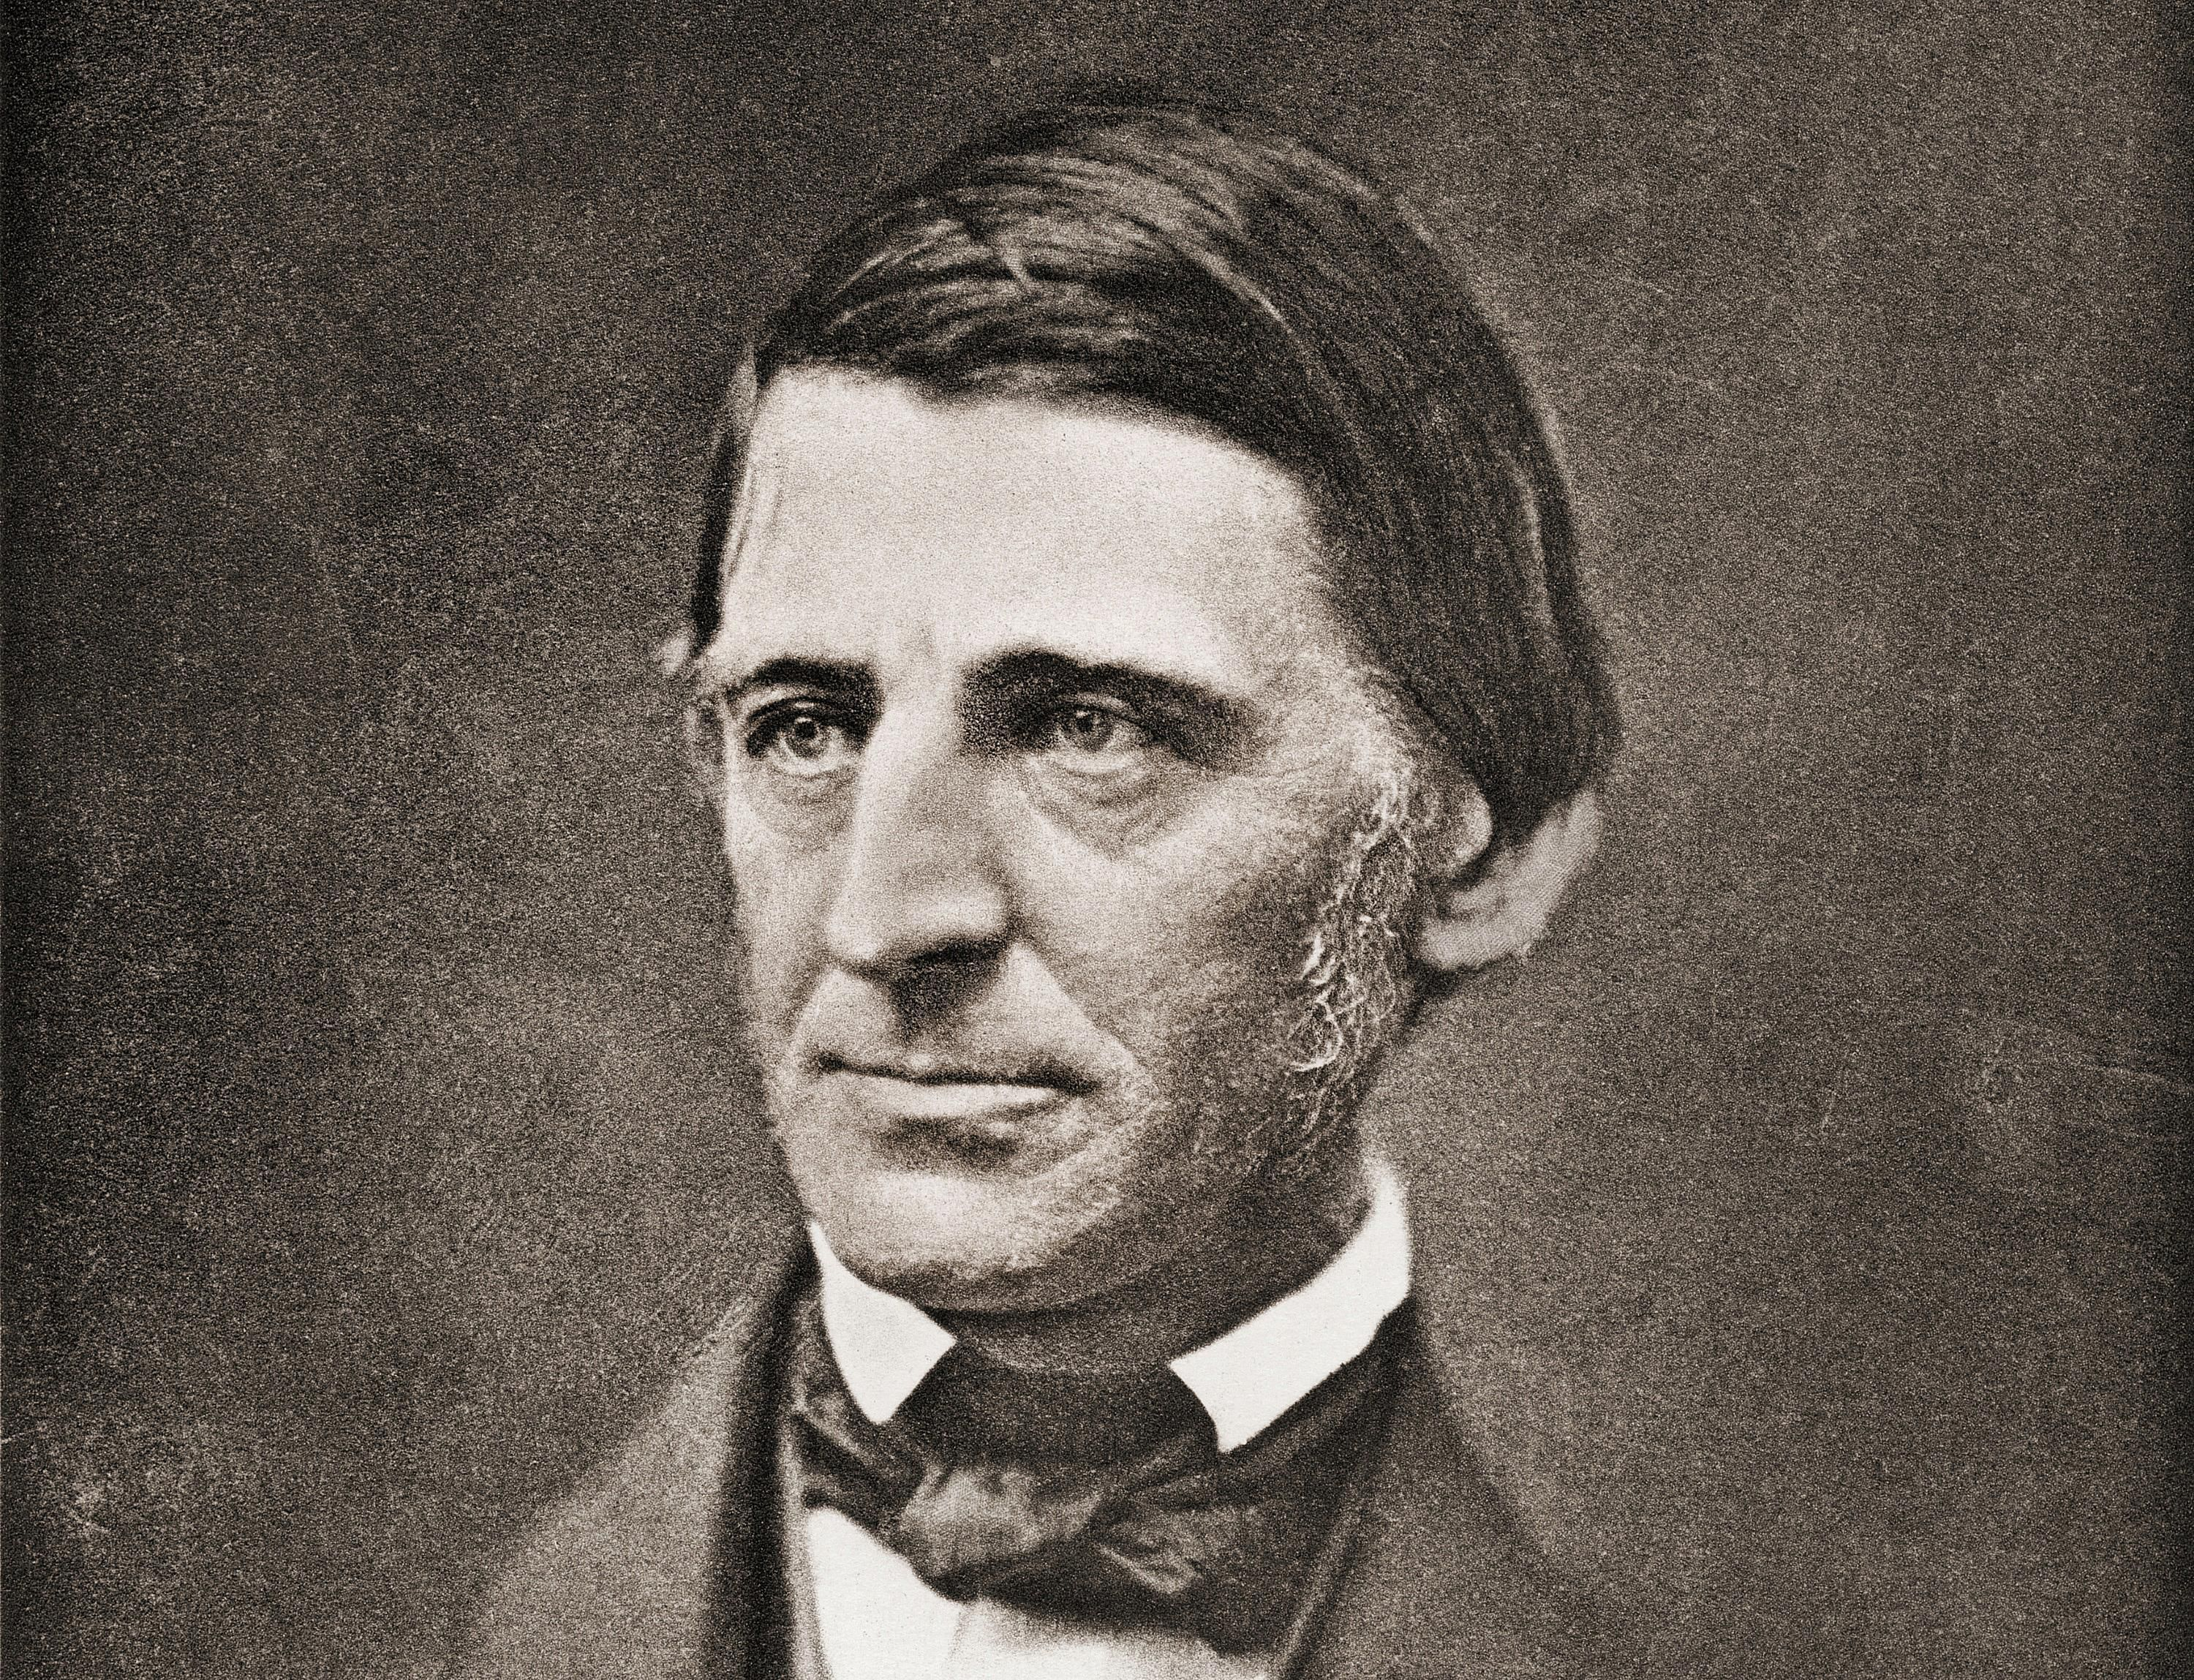 famous essays by ralph waldo emerson Ralph waldo emerson was born on 25 may 1803 in the puritan new england town of boston, massachusetts to ruth née haskins (d1853) and unitarian minister william emerson (d1811) young ralph had a strict but loving upbringing in the household.